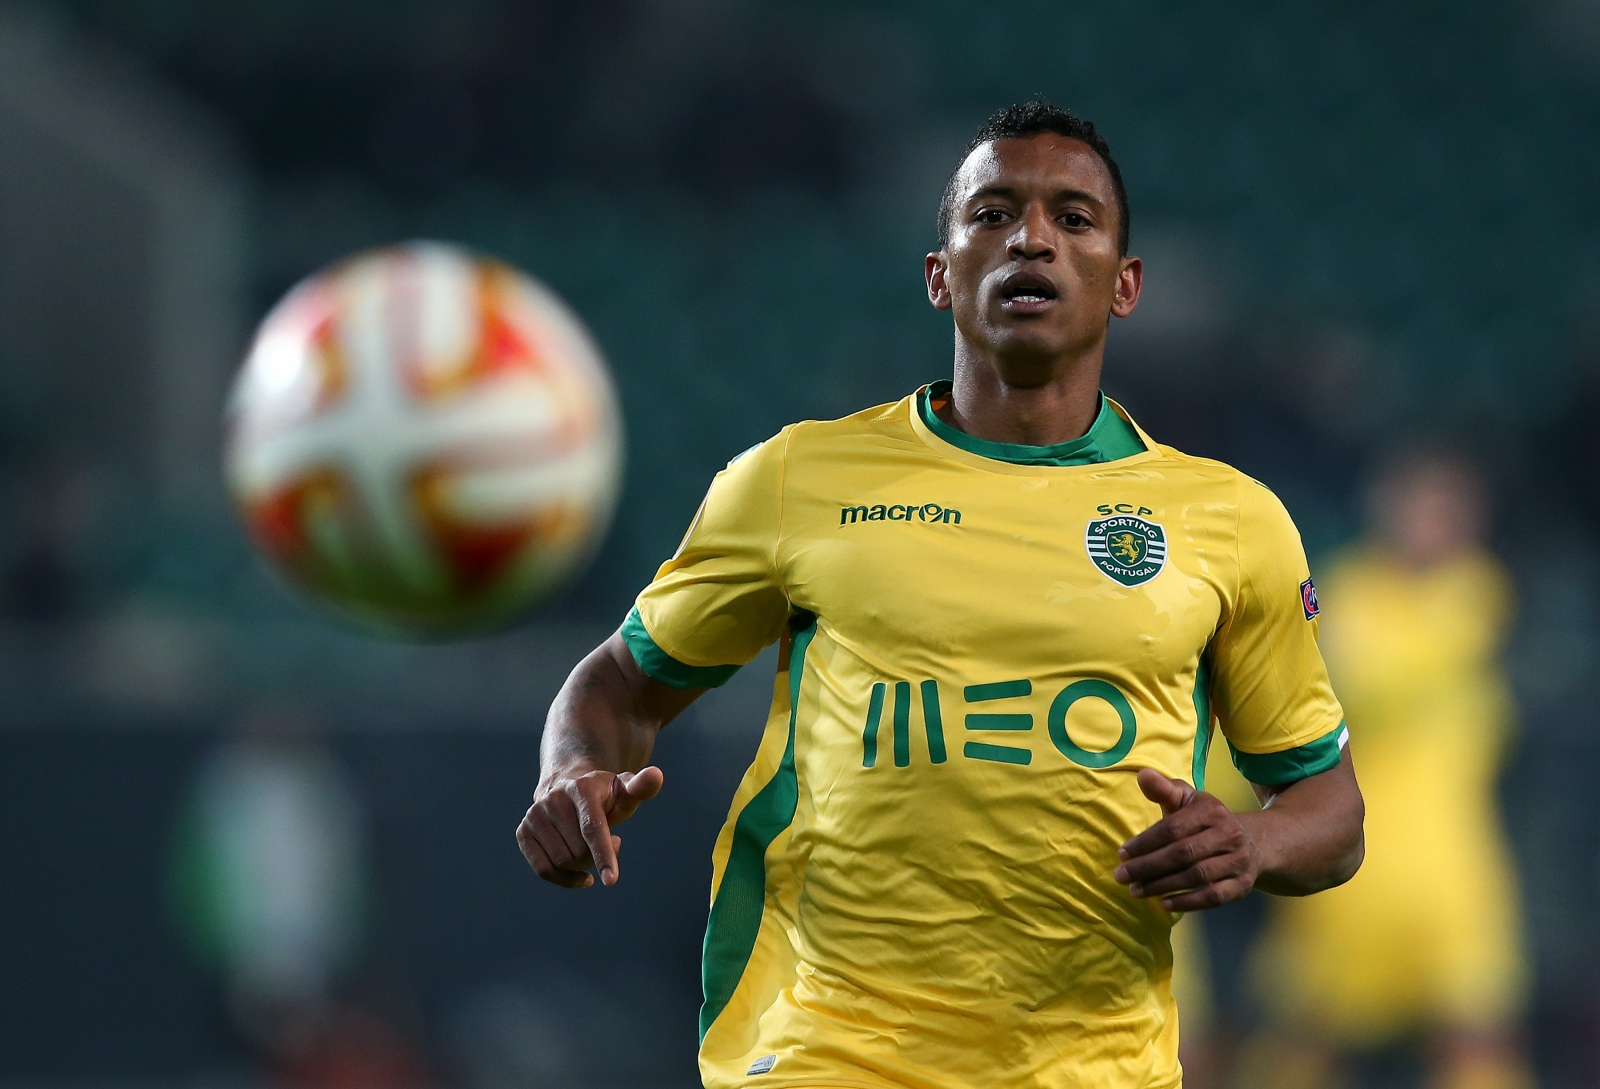 Manchester United Nani hints that he will return to Old Trafford